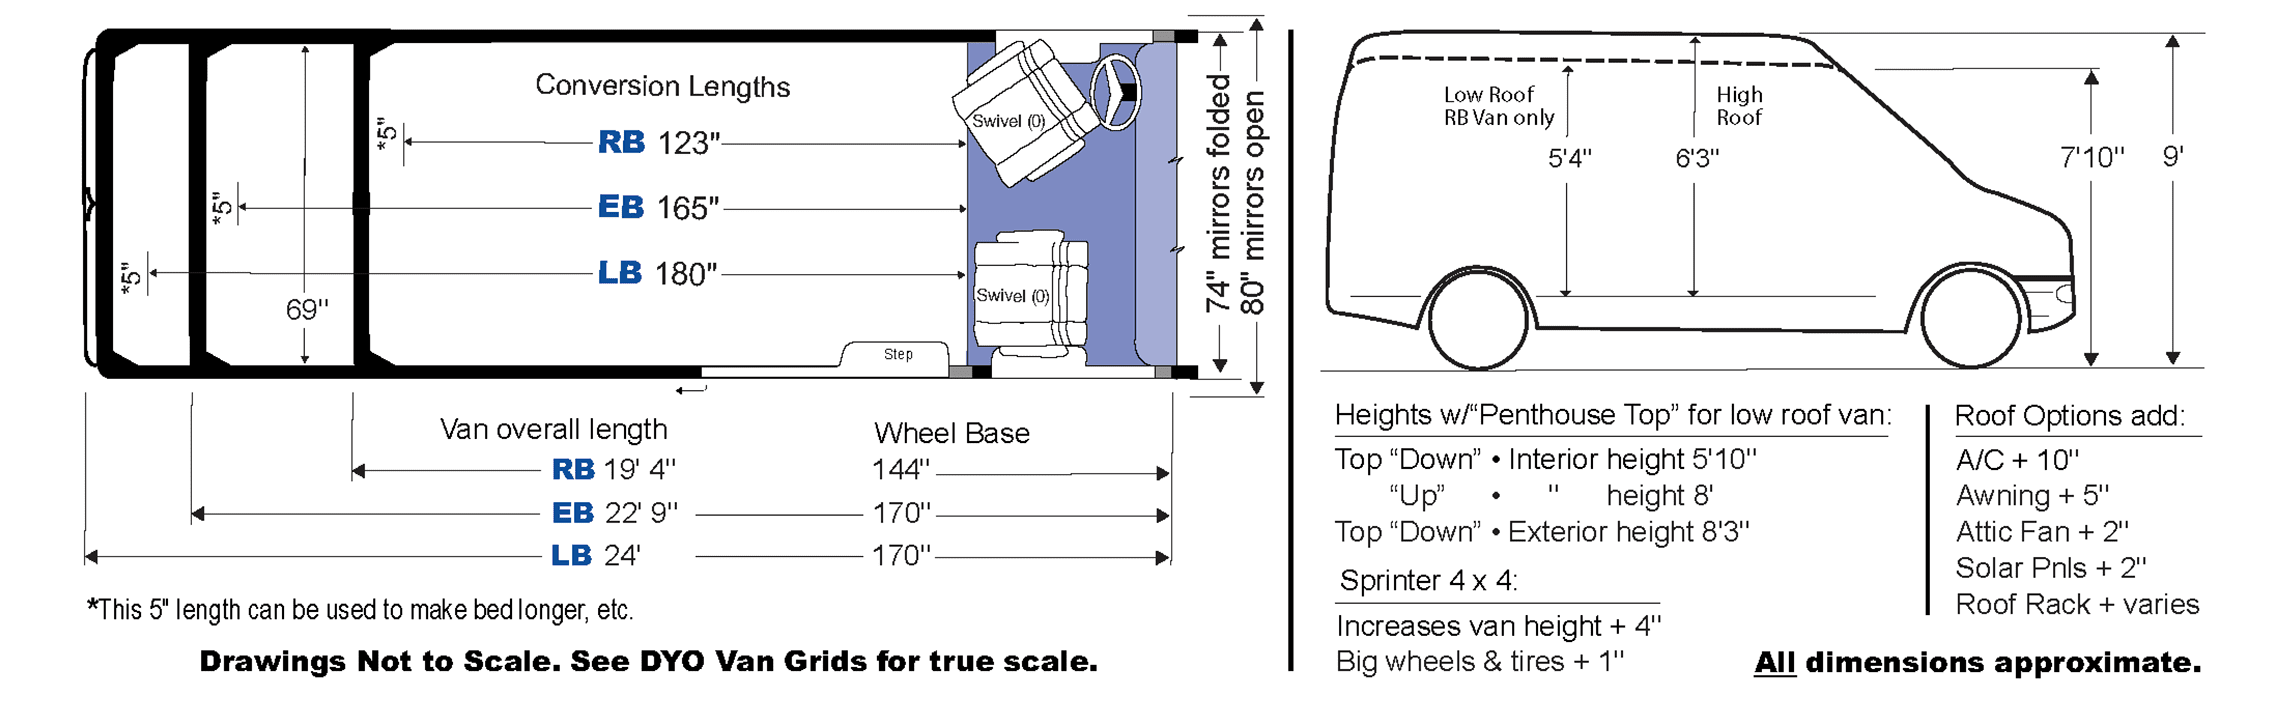 2020 Sprinter Van Dimensions